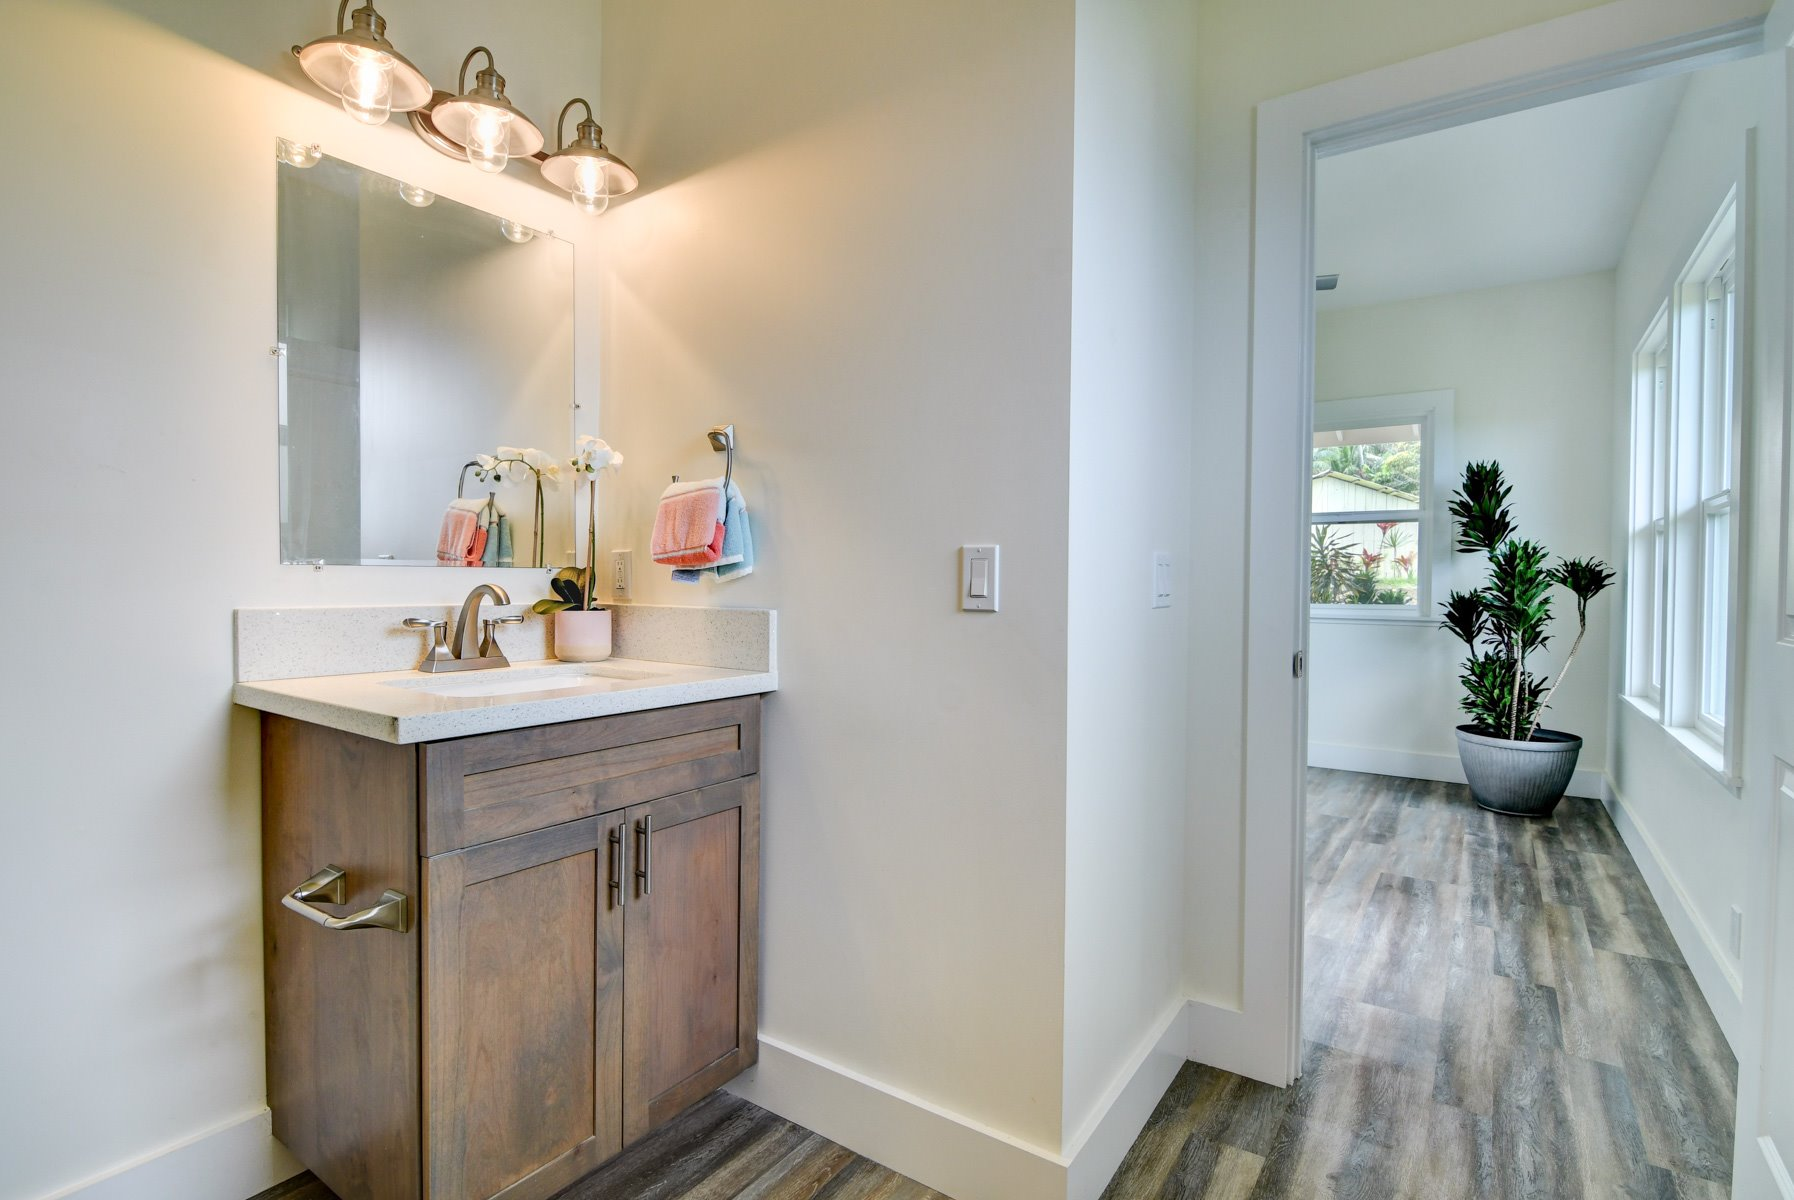 Ensuite guest bathroom which includes a walk in shower (located right behind camera shot)